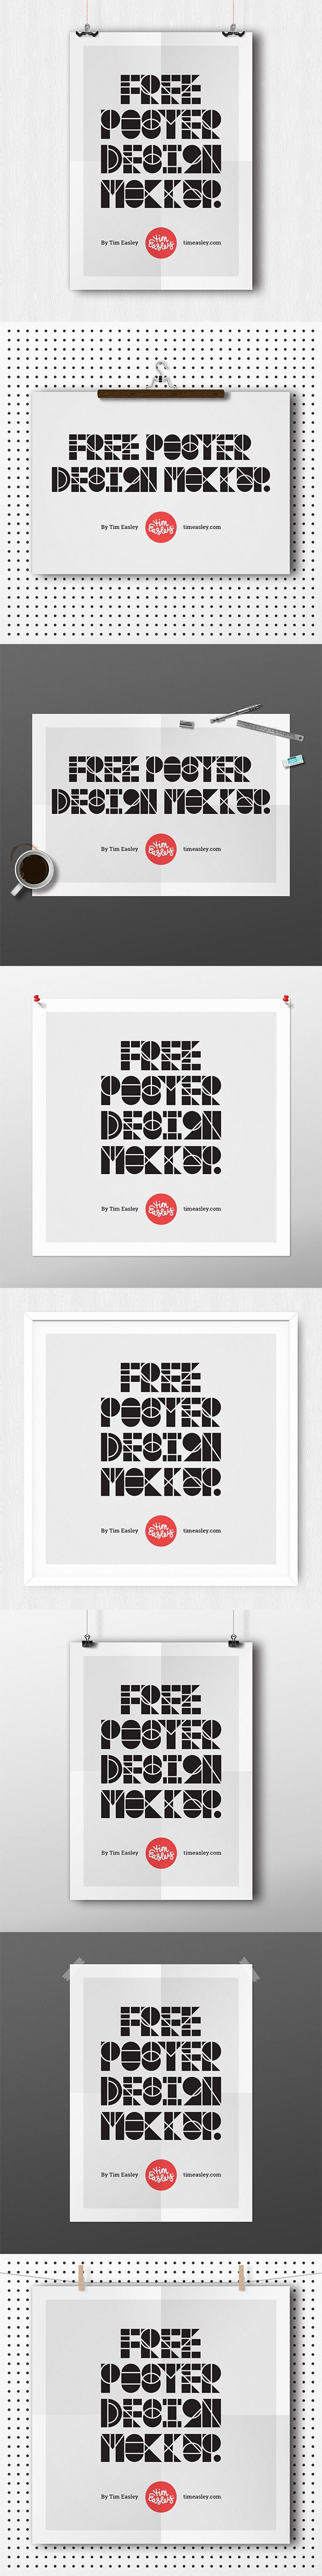 Poster design resources - Find This Pin And More On Design Resources By Warehervenom